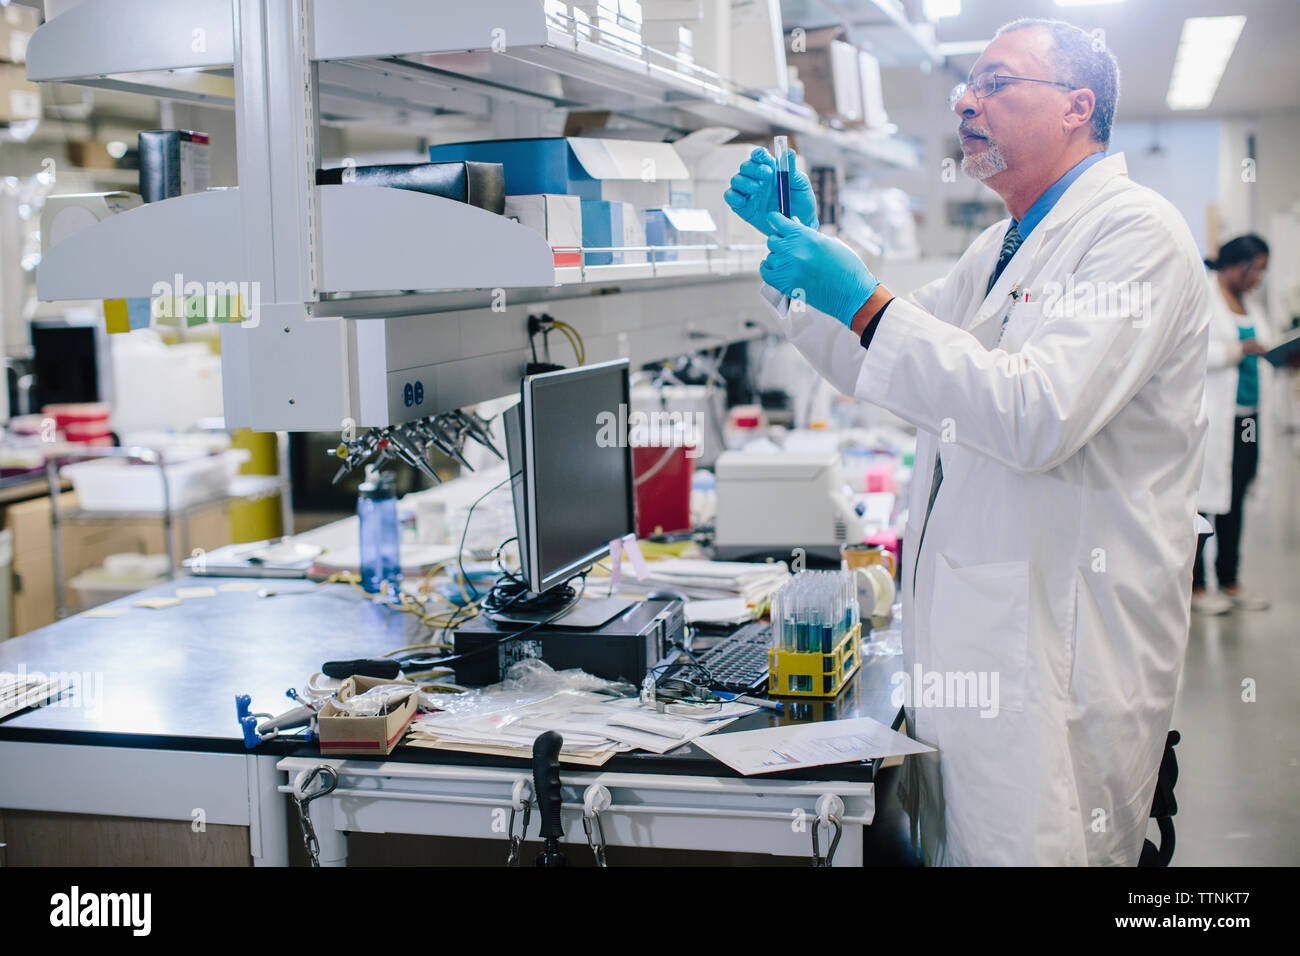 Male doctor examining test tubes in laboratory Stock Photo